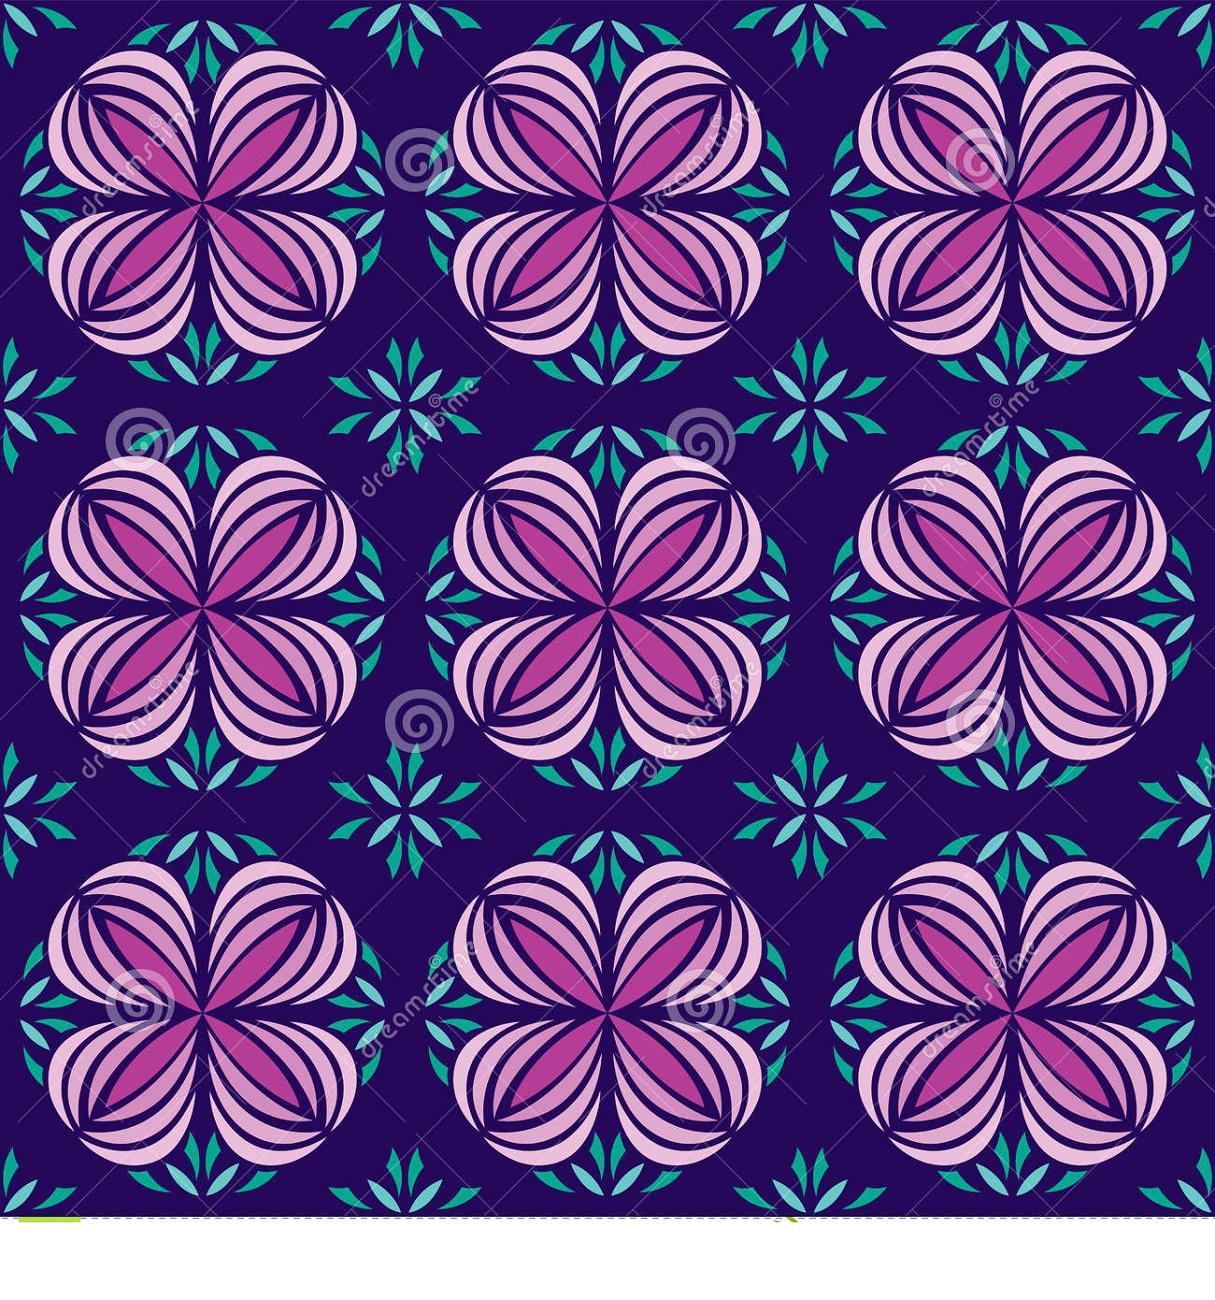 circle-shape-pattern-flower